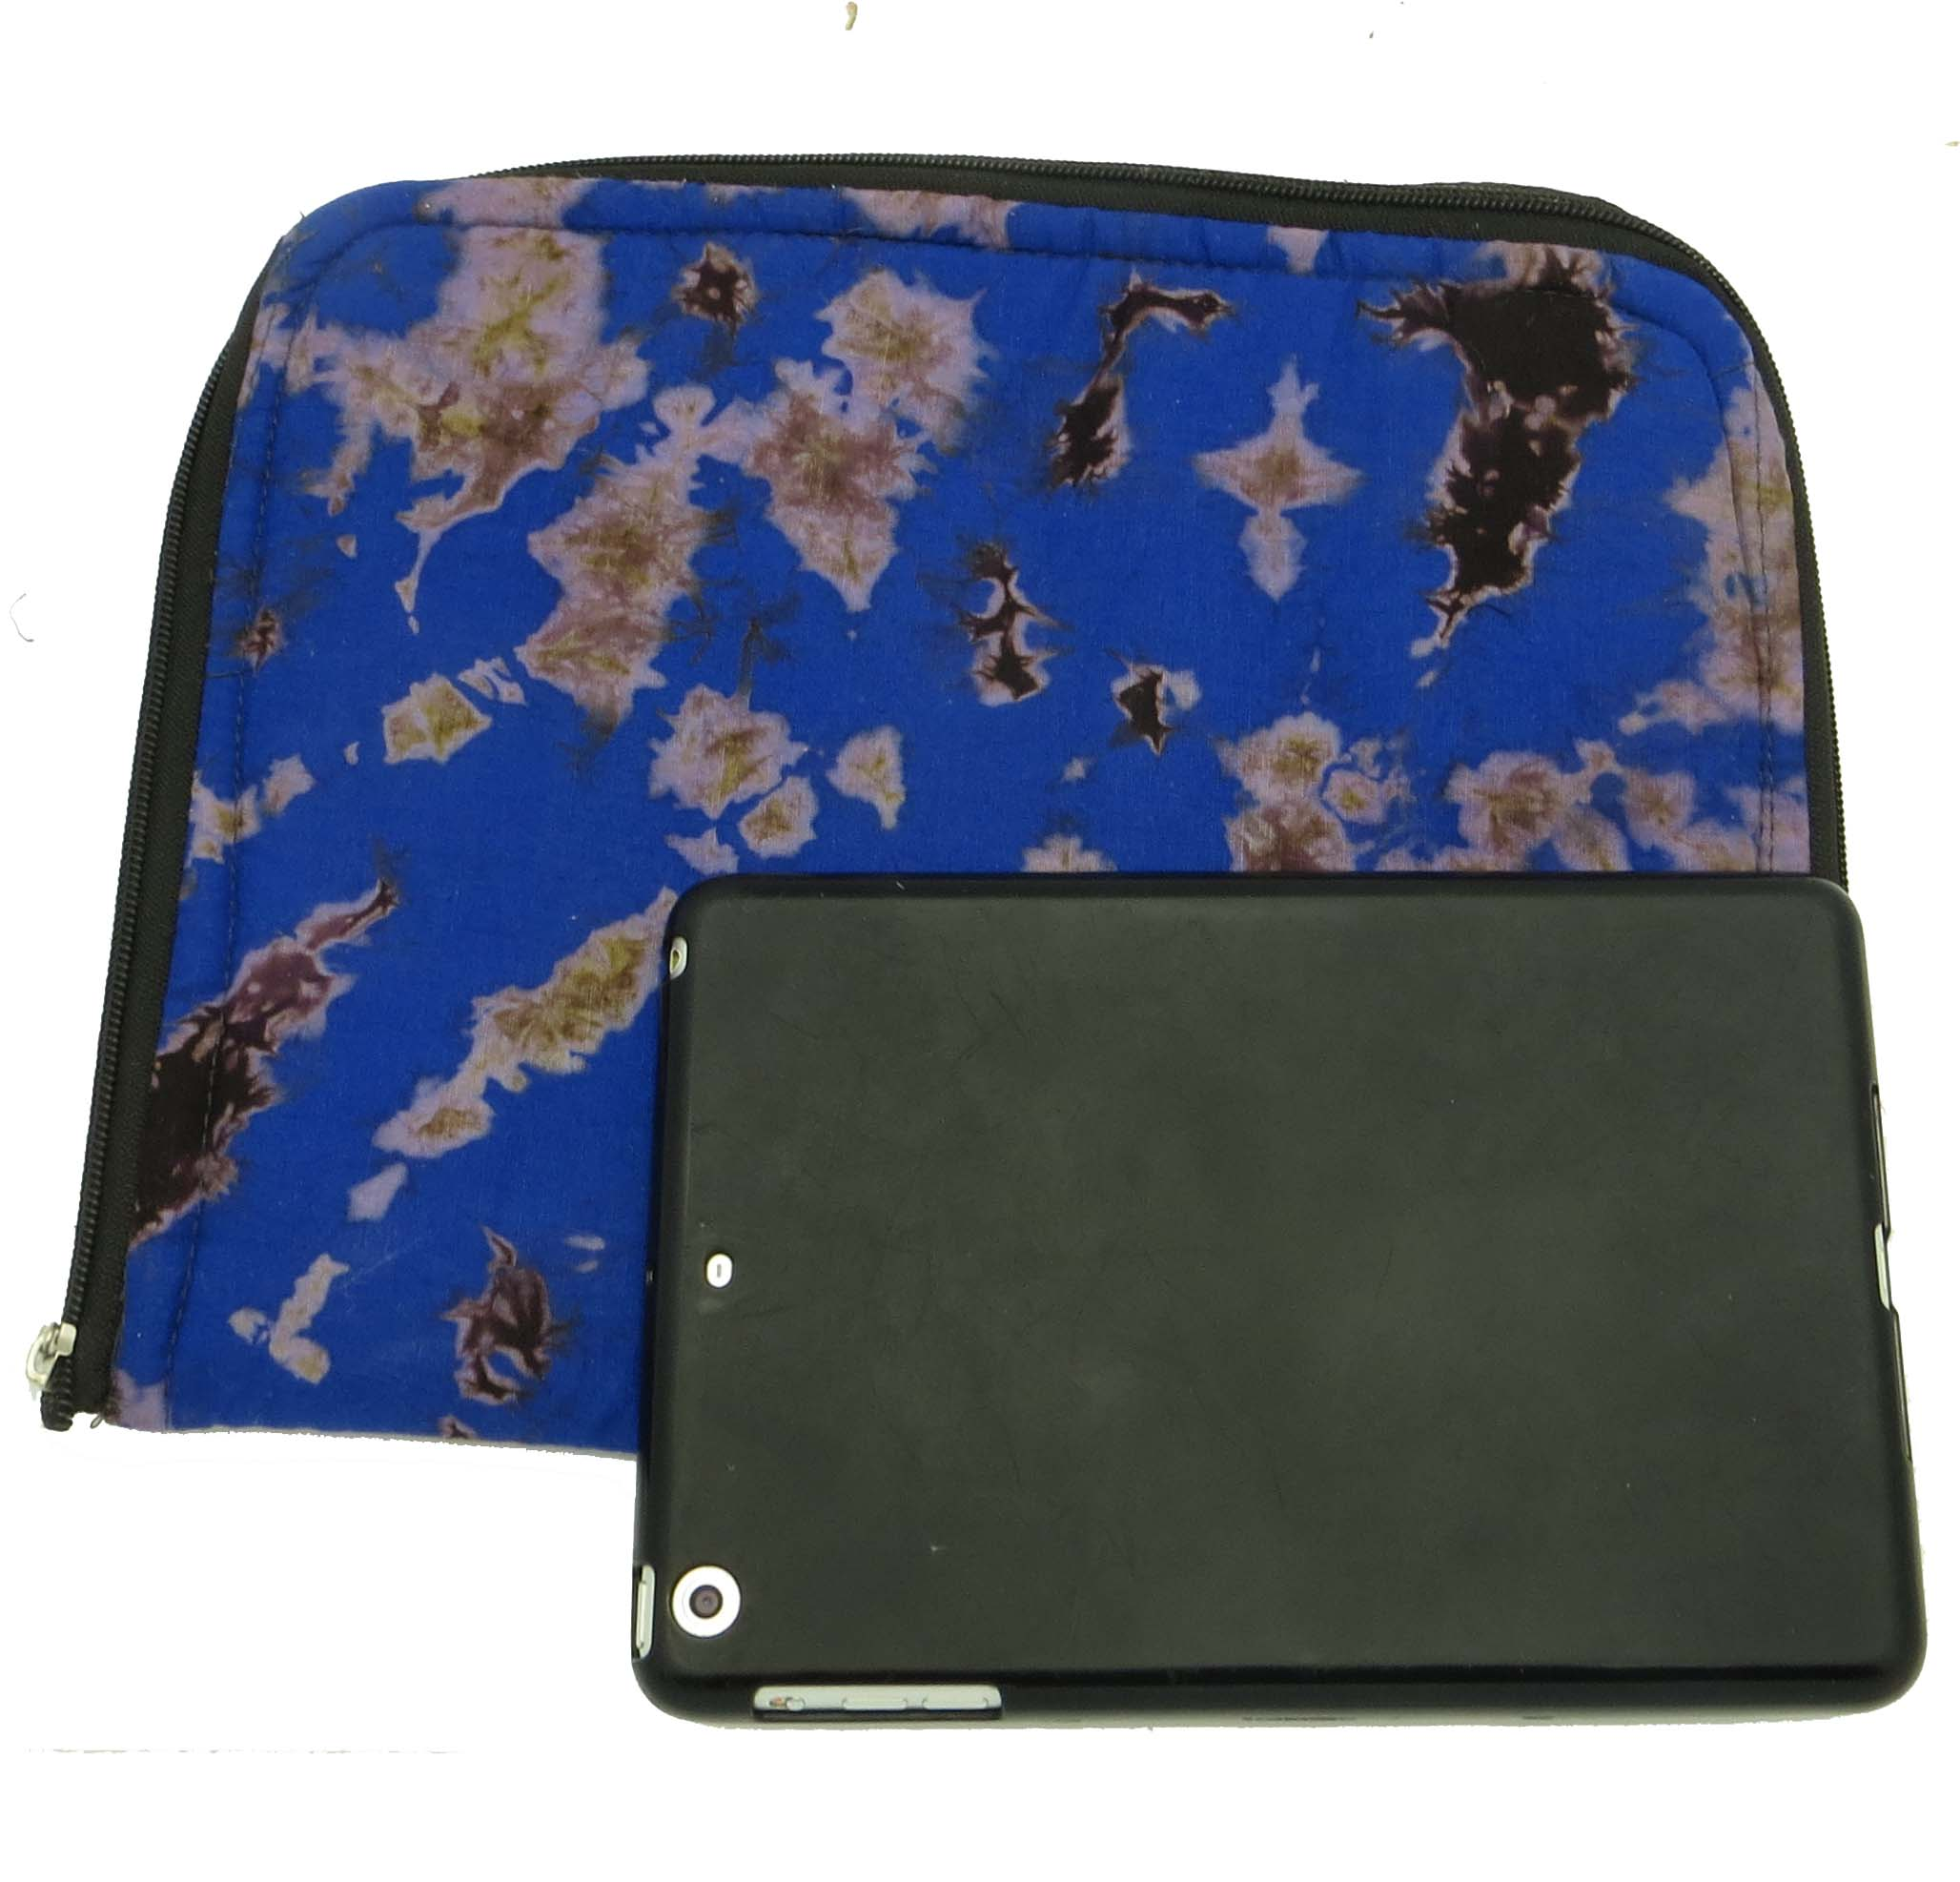 Cloth iPad bag - tie dye